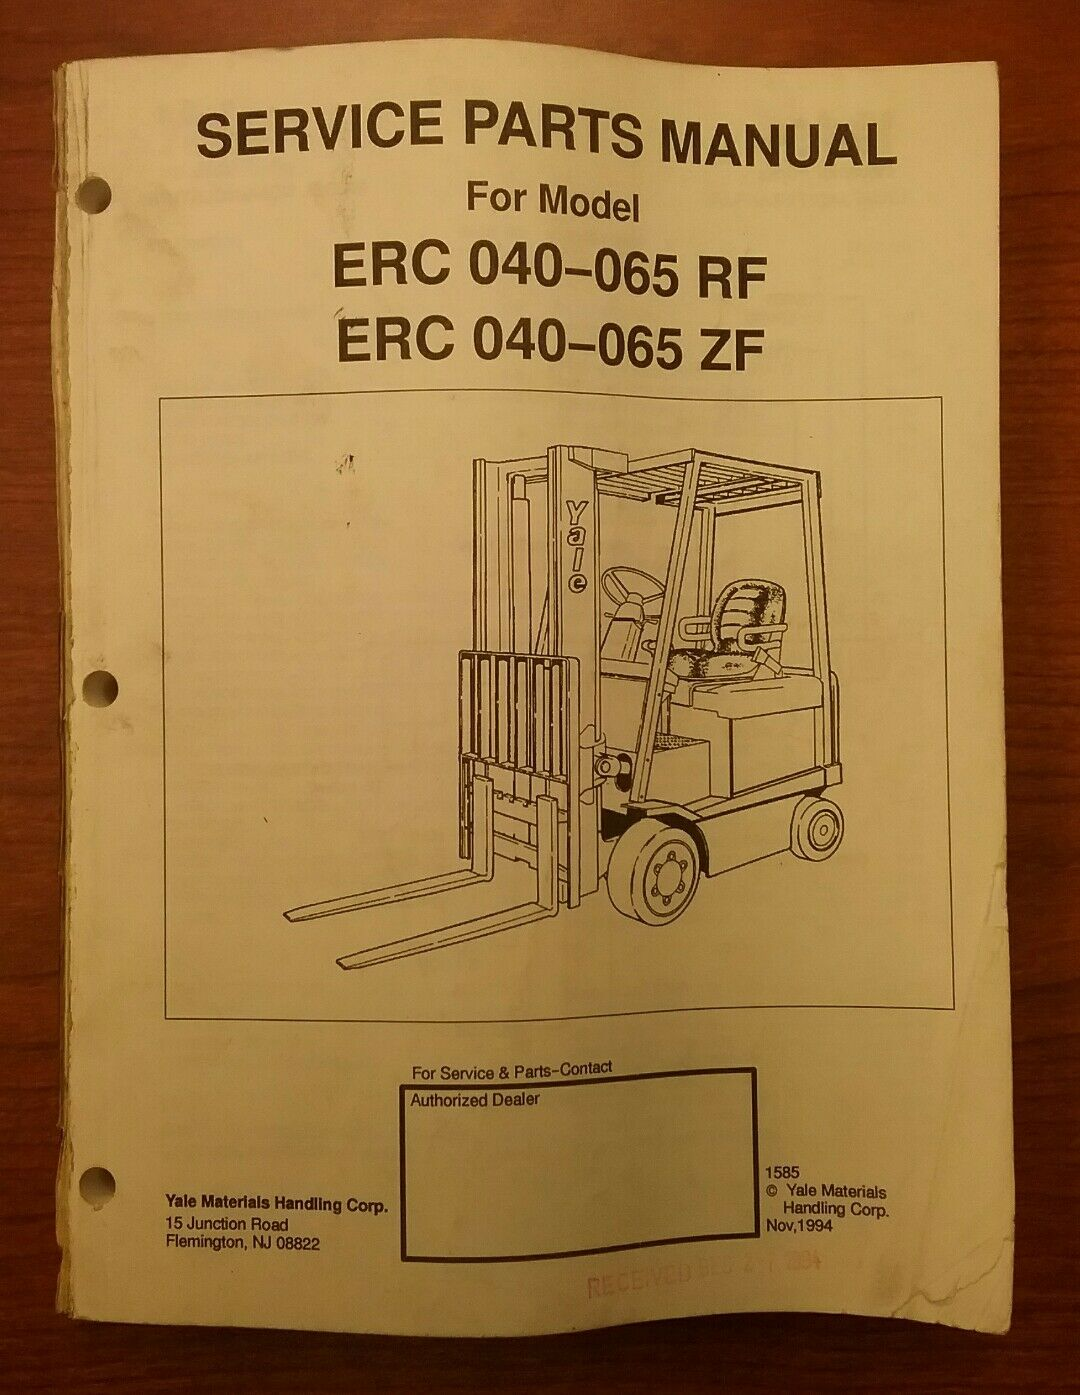 Parts Yale Diagram Fork Lift Gtp060 Explained Wiring Diagrams Glc Service Manual Erc 040 065 Rf Zf 1585 35 60 Picclick